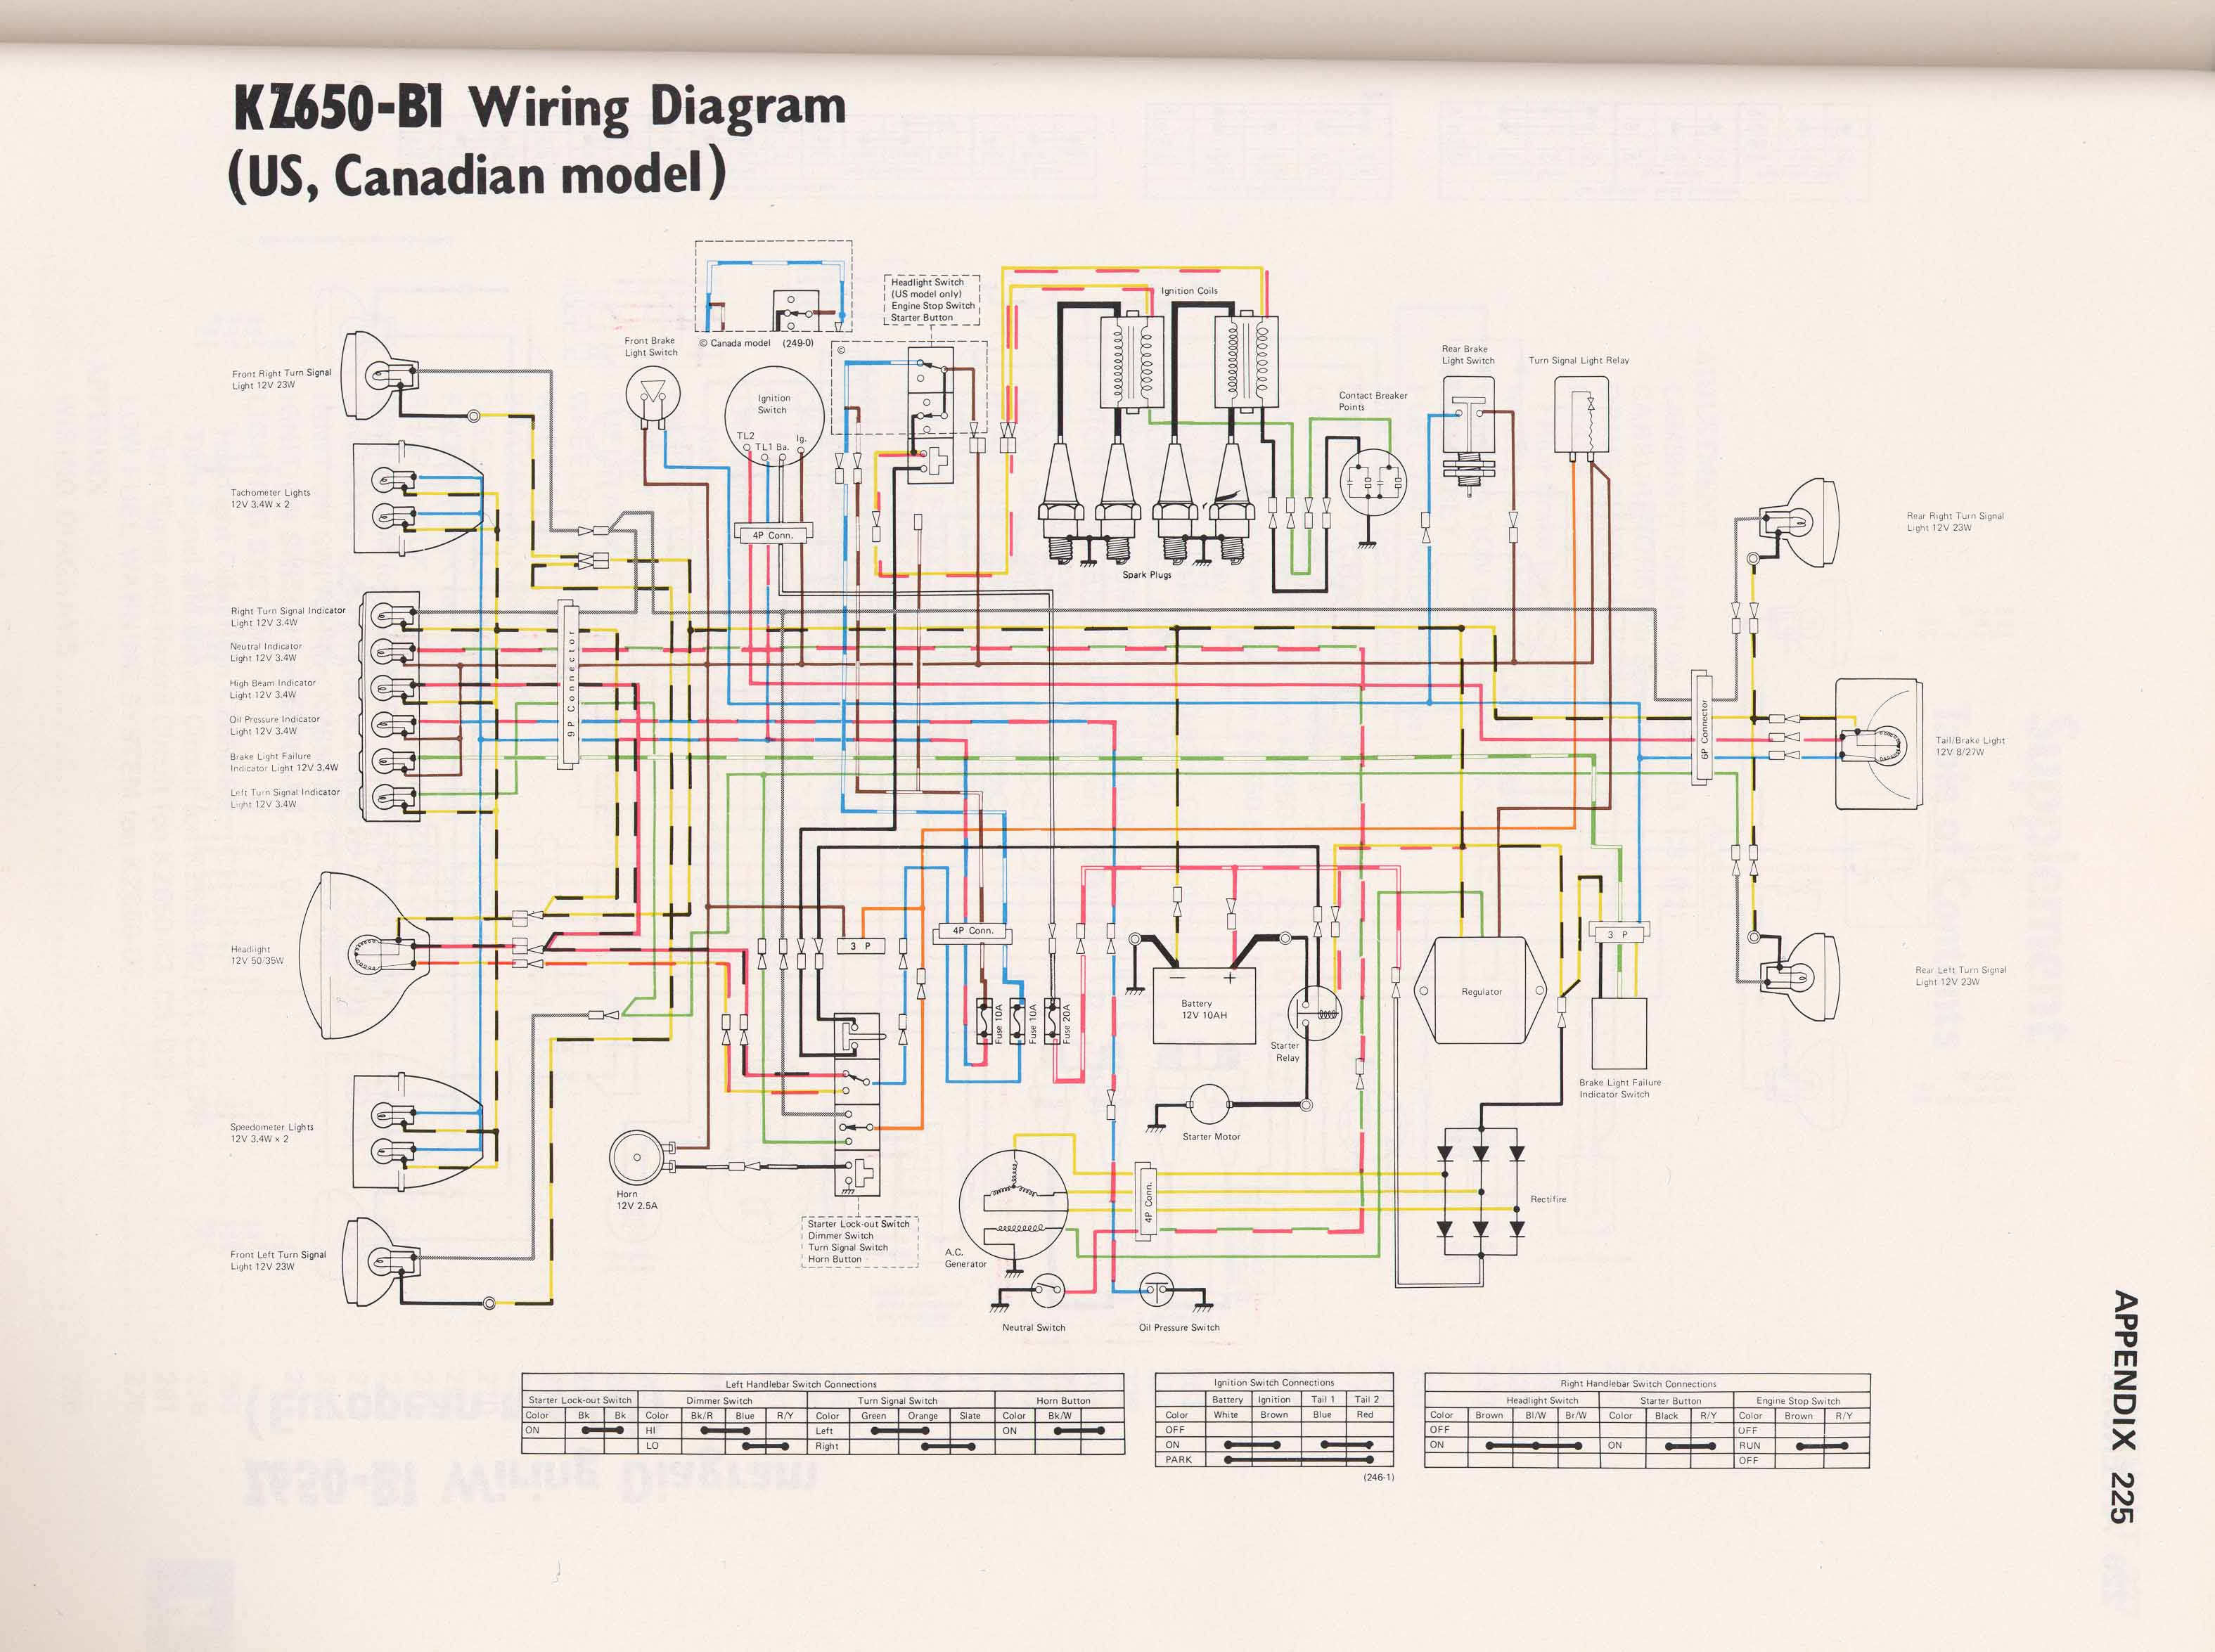 KZ650 B1 kz650 info 2009 kawasaki ninja 250r wiring diagram at alyssarenee.co